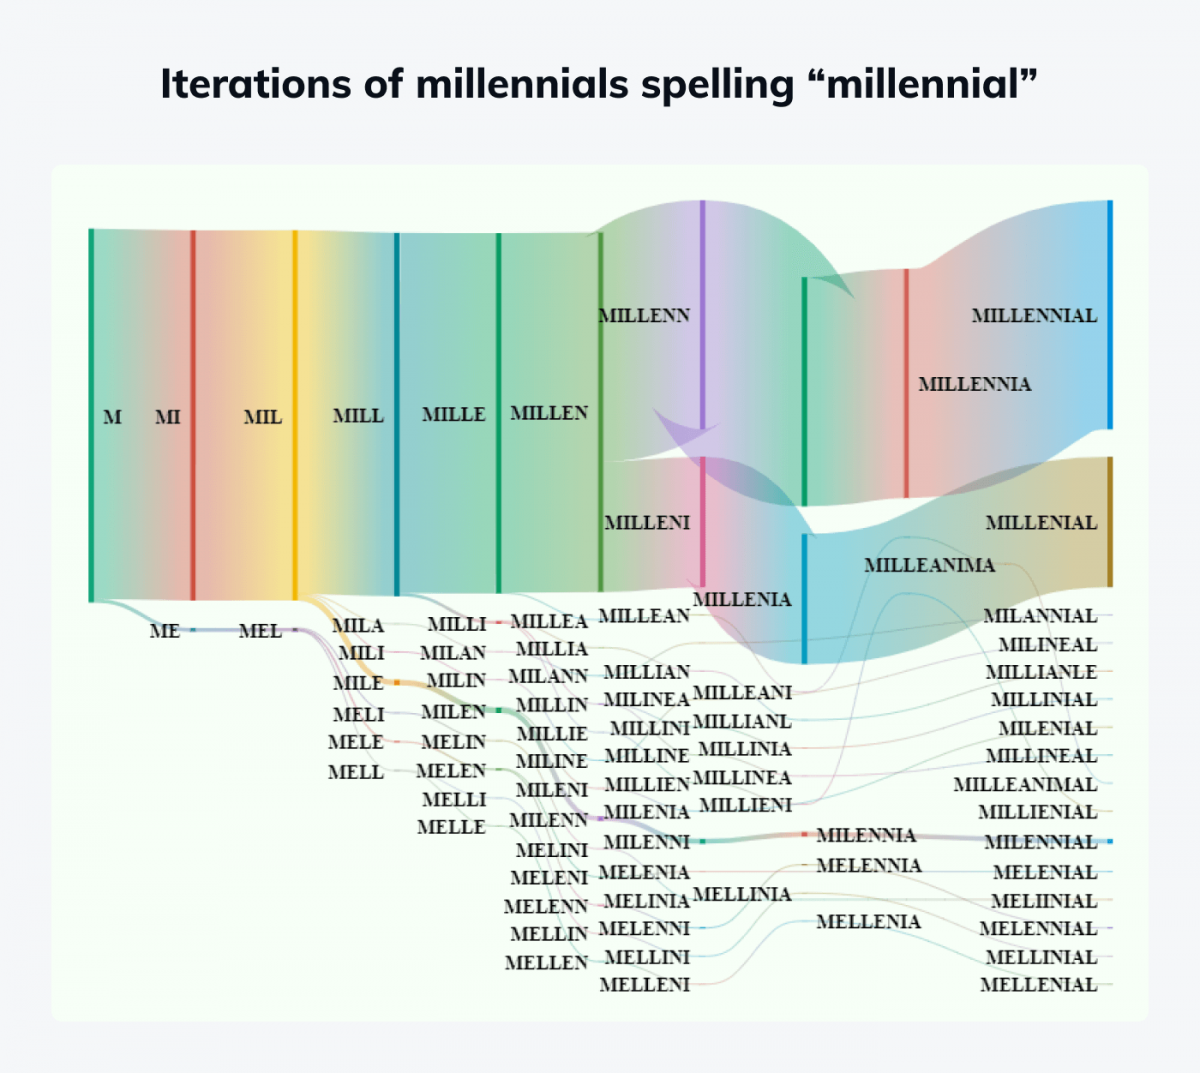 Infographic showing iterations of millennials spelling millennial